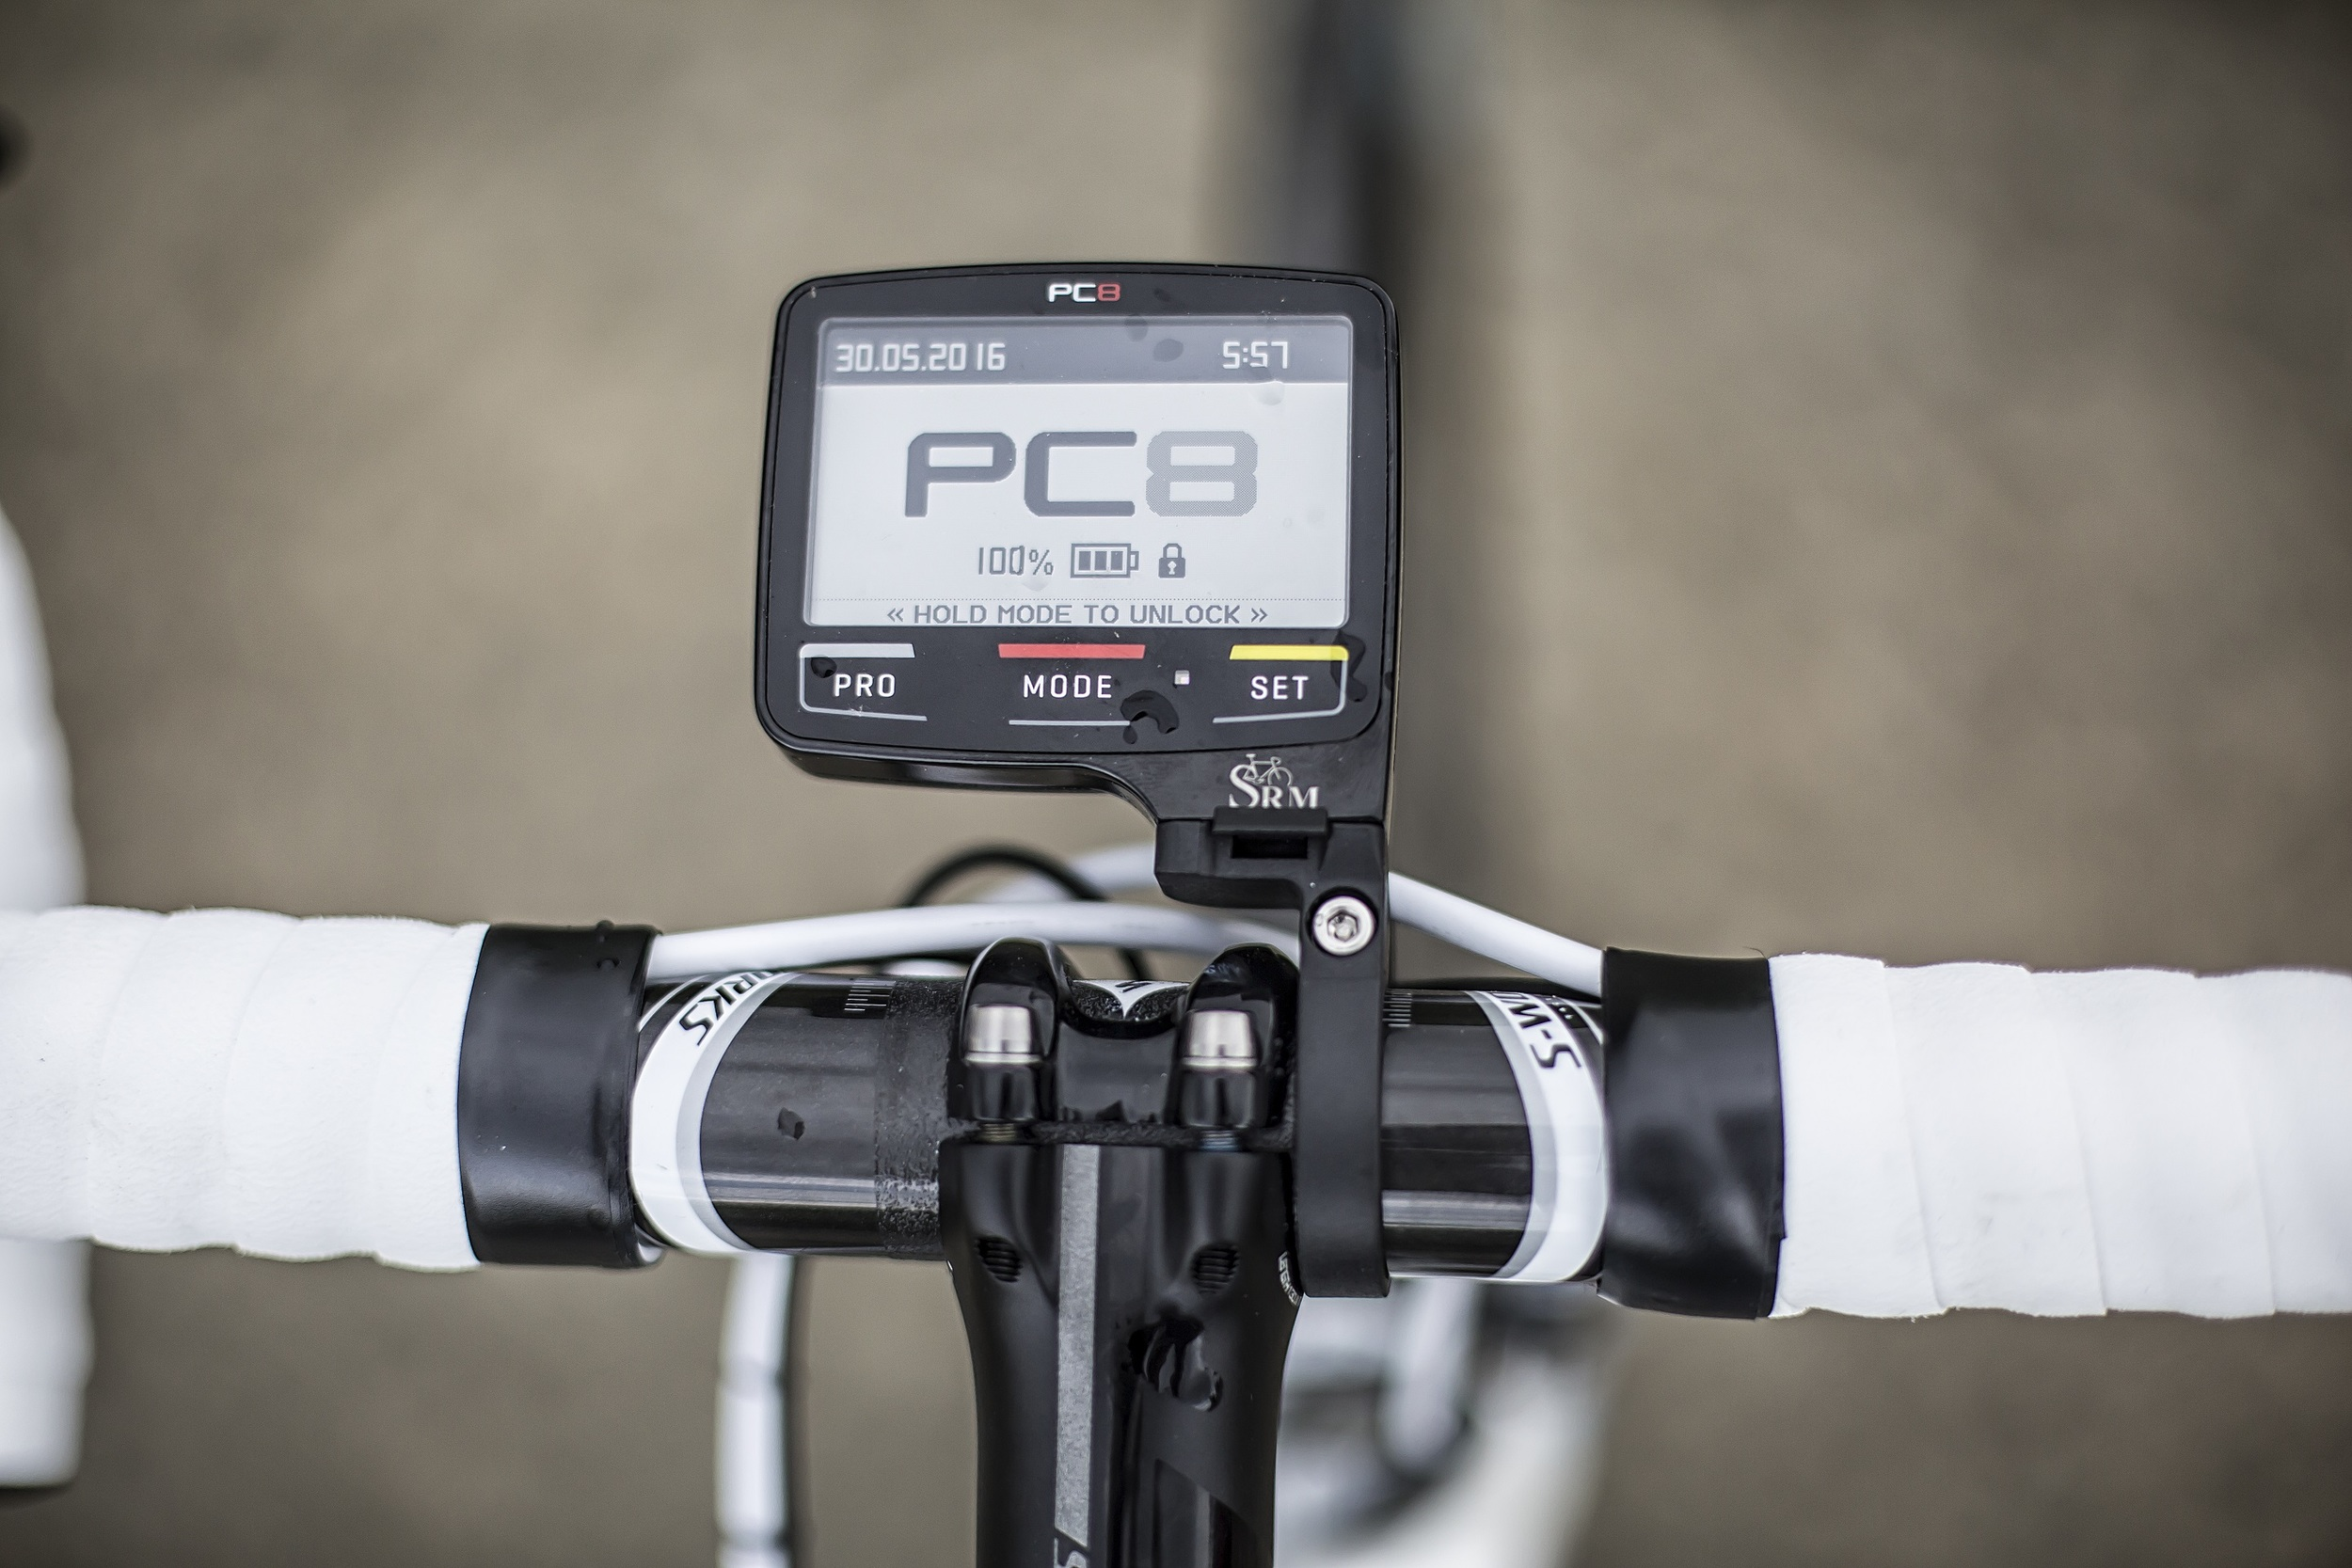 I love the PC8, the display is so easy to read when I am suffering on the bike